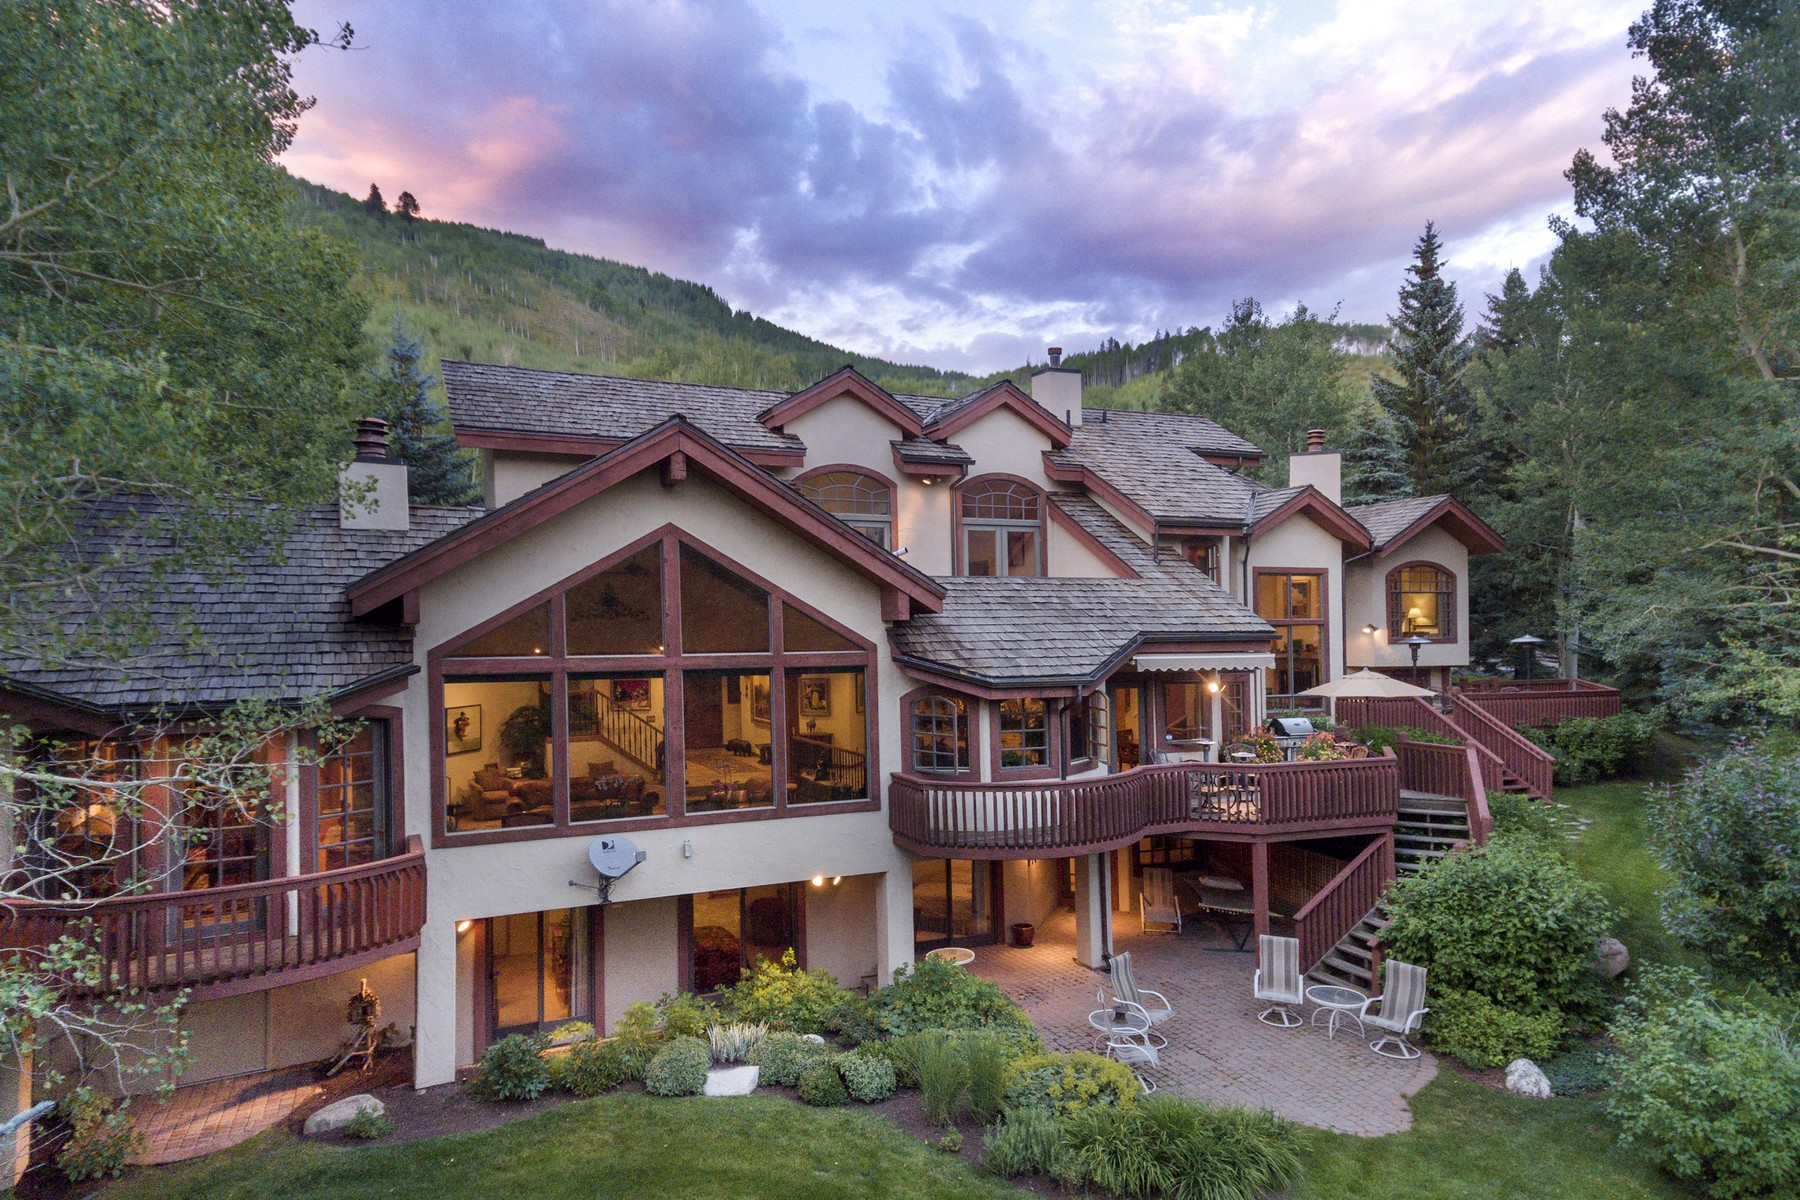 Single Family Home for Active at An Alpine Oasis with Vail Mountain Views 781 Potato Patch Dr Vail, Colorado 81657 United States